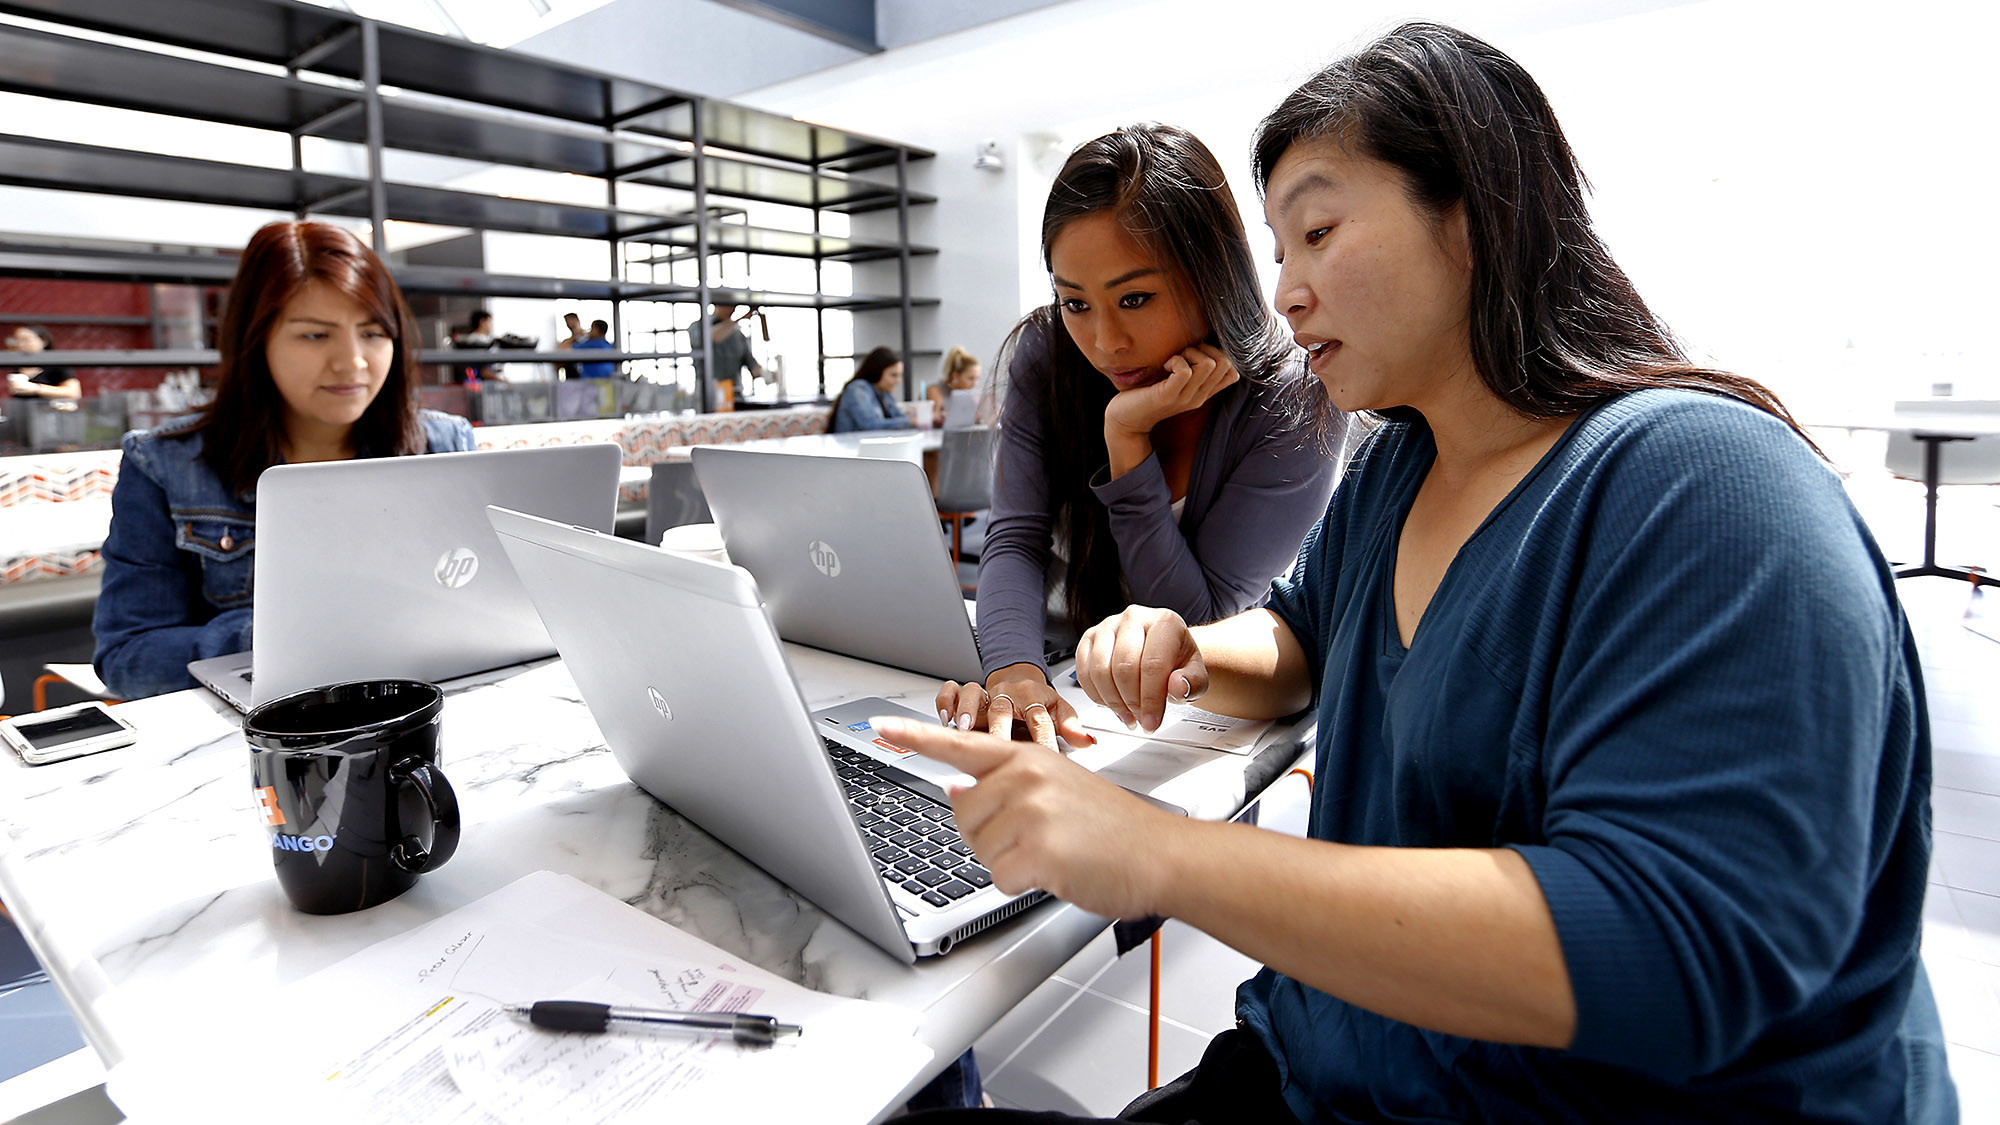 Amy Garcia, left, Leslie Chen and Waisze Lam work at Rotten Tomatoes and Fandango offices in Beverly Hills. Rotten Tomatoes continues to grow under the Fandango corporate umbrella.